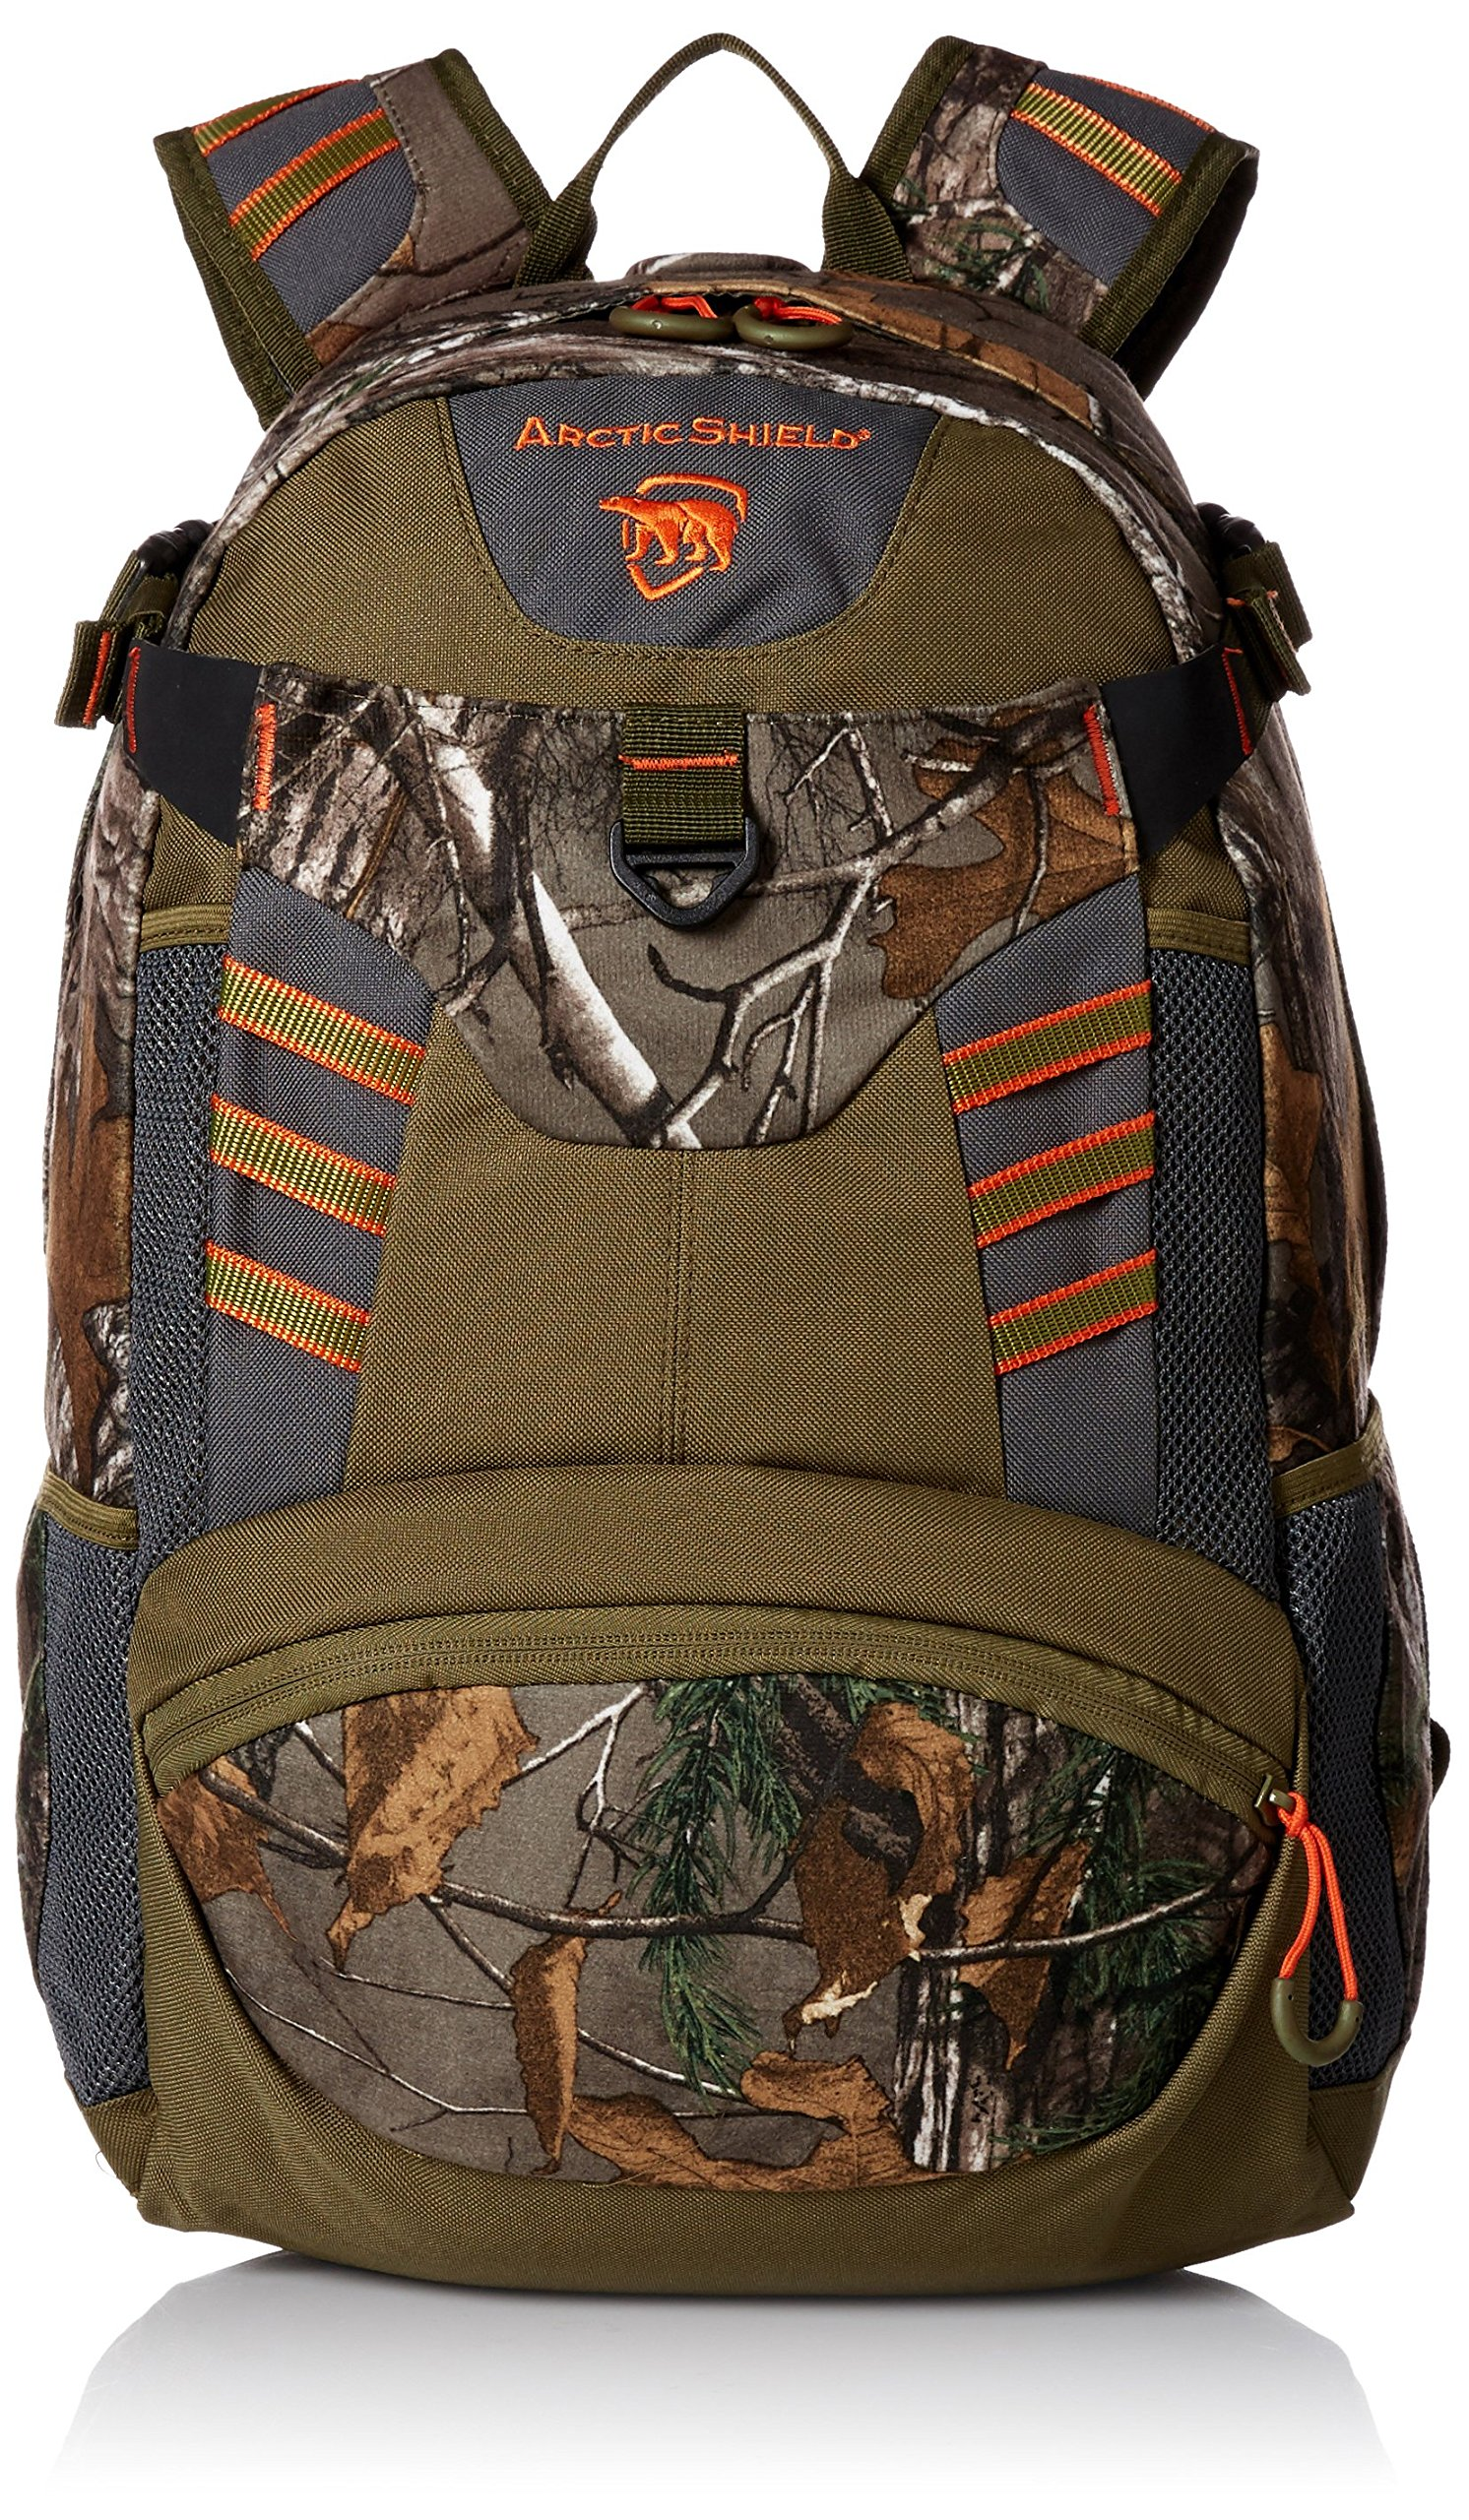 Onyx 561300-802-999-15 Outdoor T3X Realtree Xtra Backpack, Realtree Xtra by Onyx (Image #1)